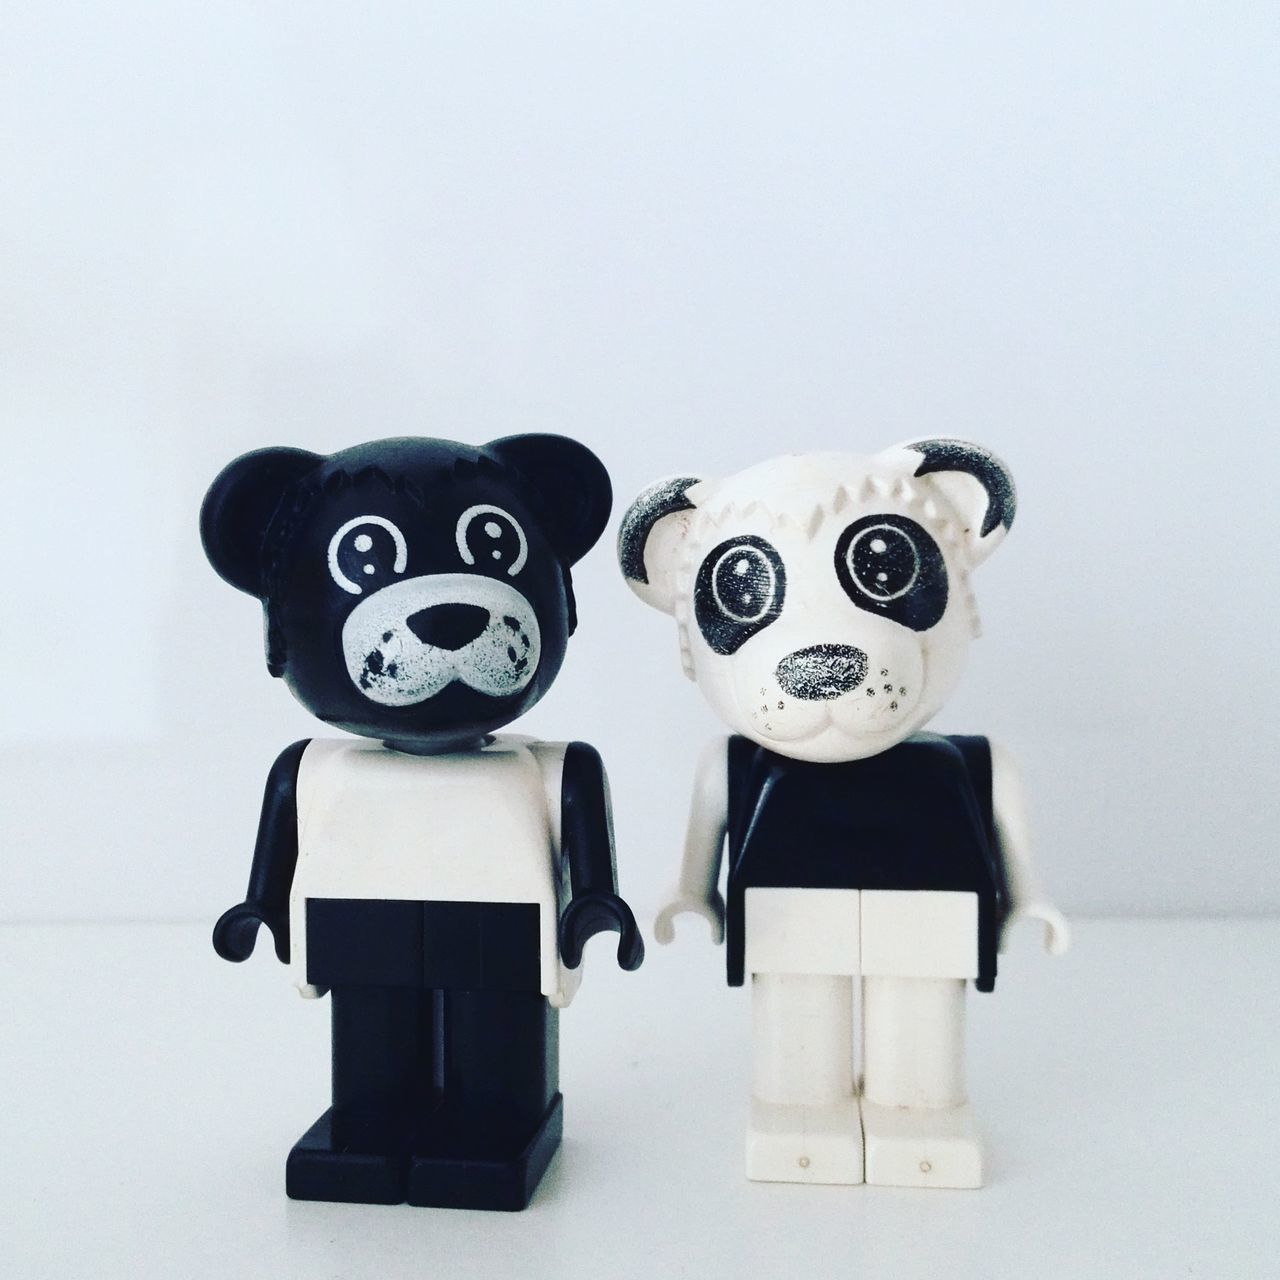 Affection Bear Black Black And White Blackandwhite Couple Day Fable Fabuland Family Figure Figurine  Indoors  LEGO Legolove Love No People Panda Relationship White White Background